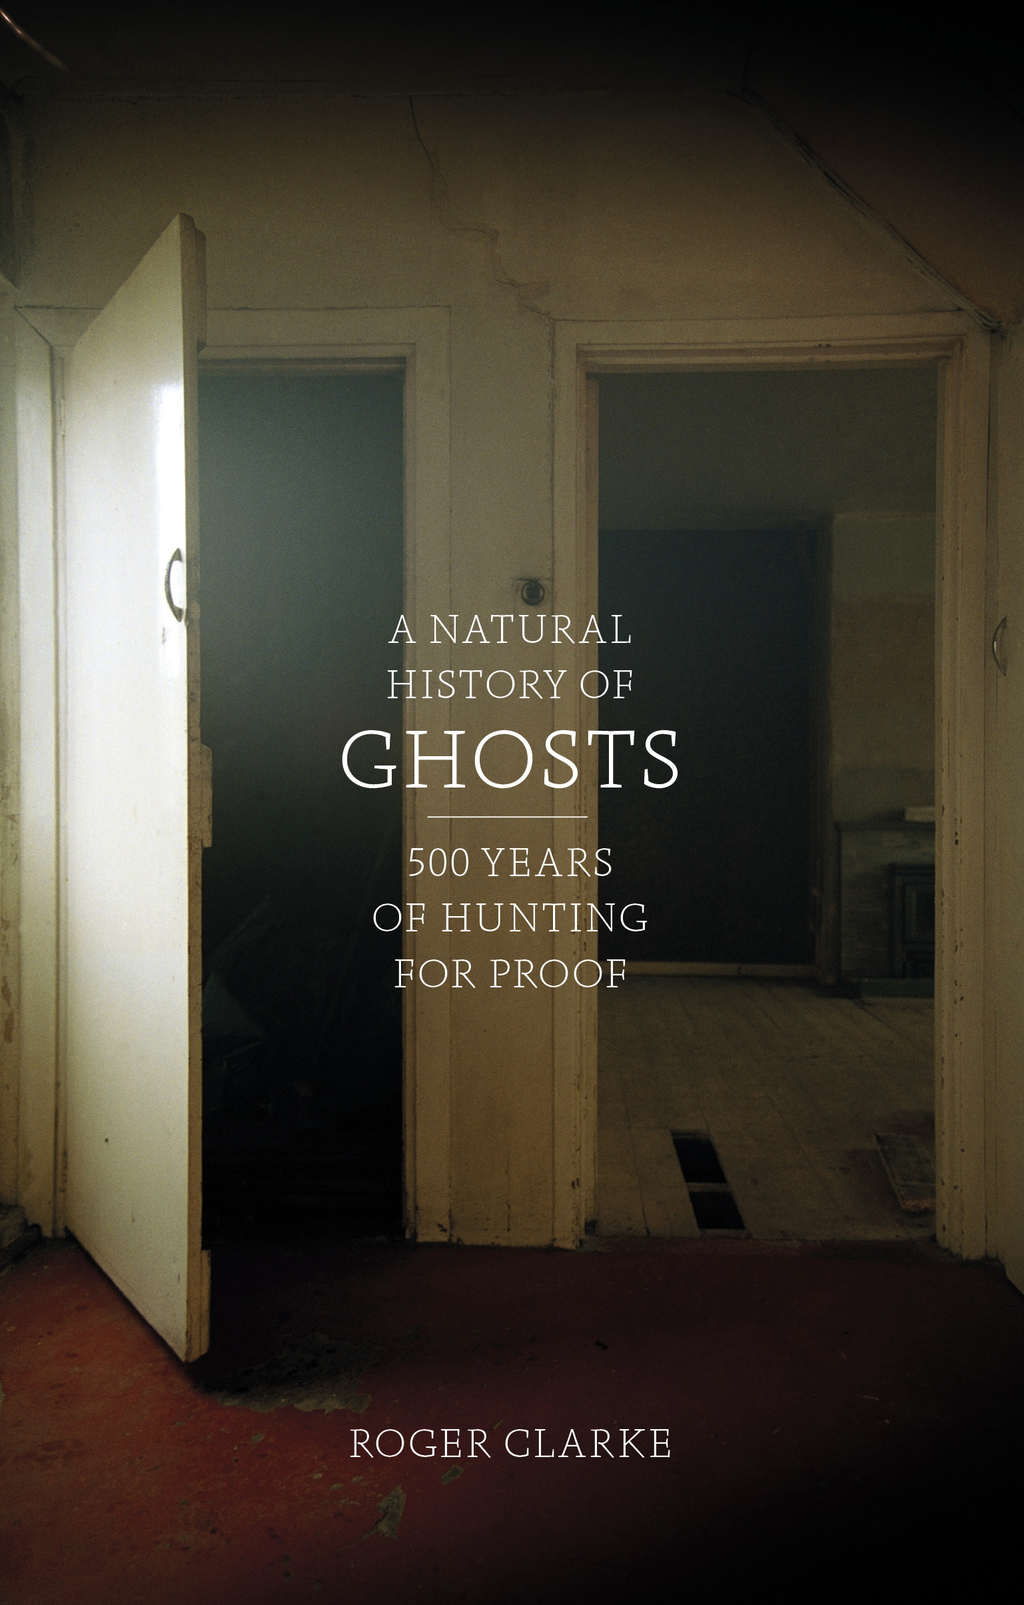 A Natural History of Ghosts 500 Years of Hunting for Proof